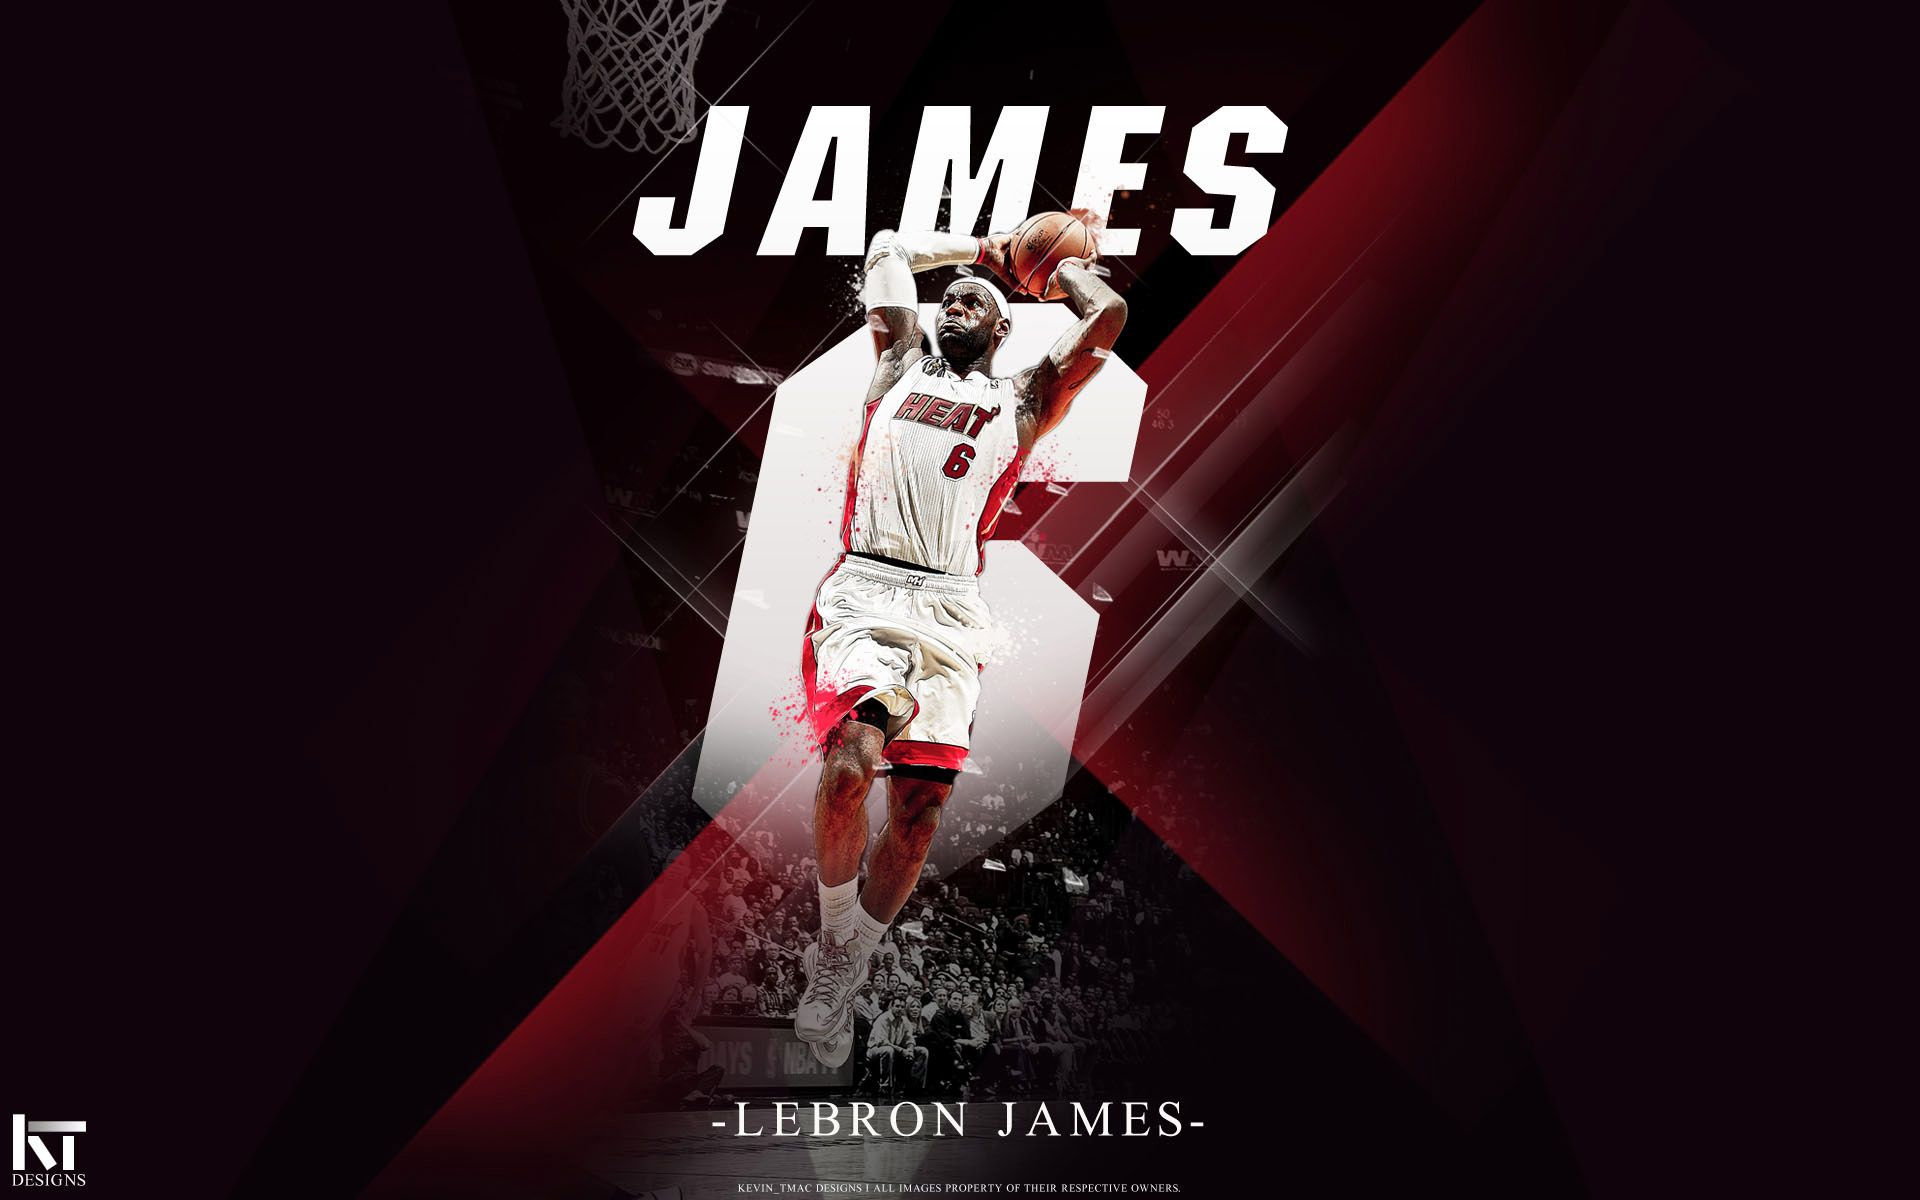 Free 64 Wallpapers Lebron James Miami Heat Dunk Wallpaper Lebron James Lebron James Wallpapers Lebron James Miami Heat